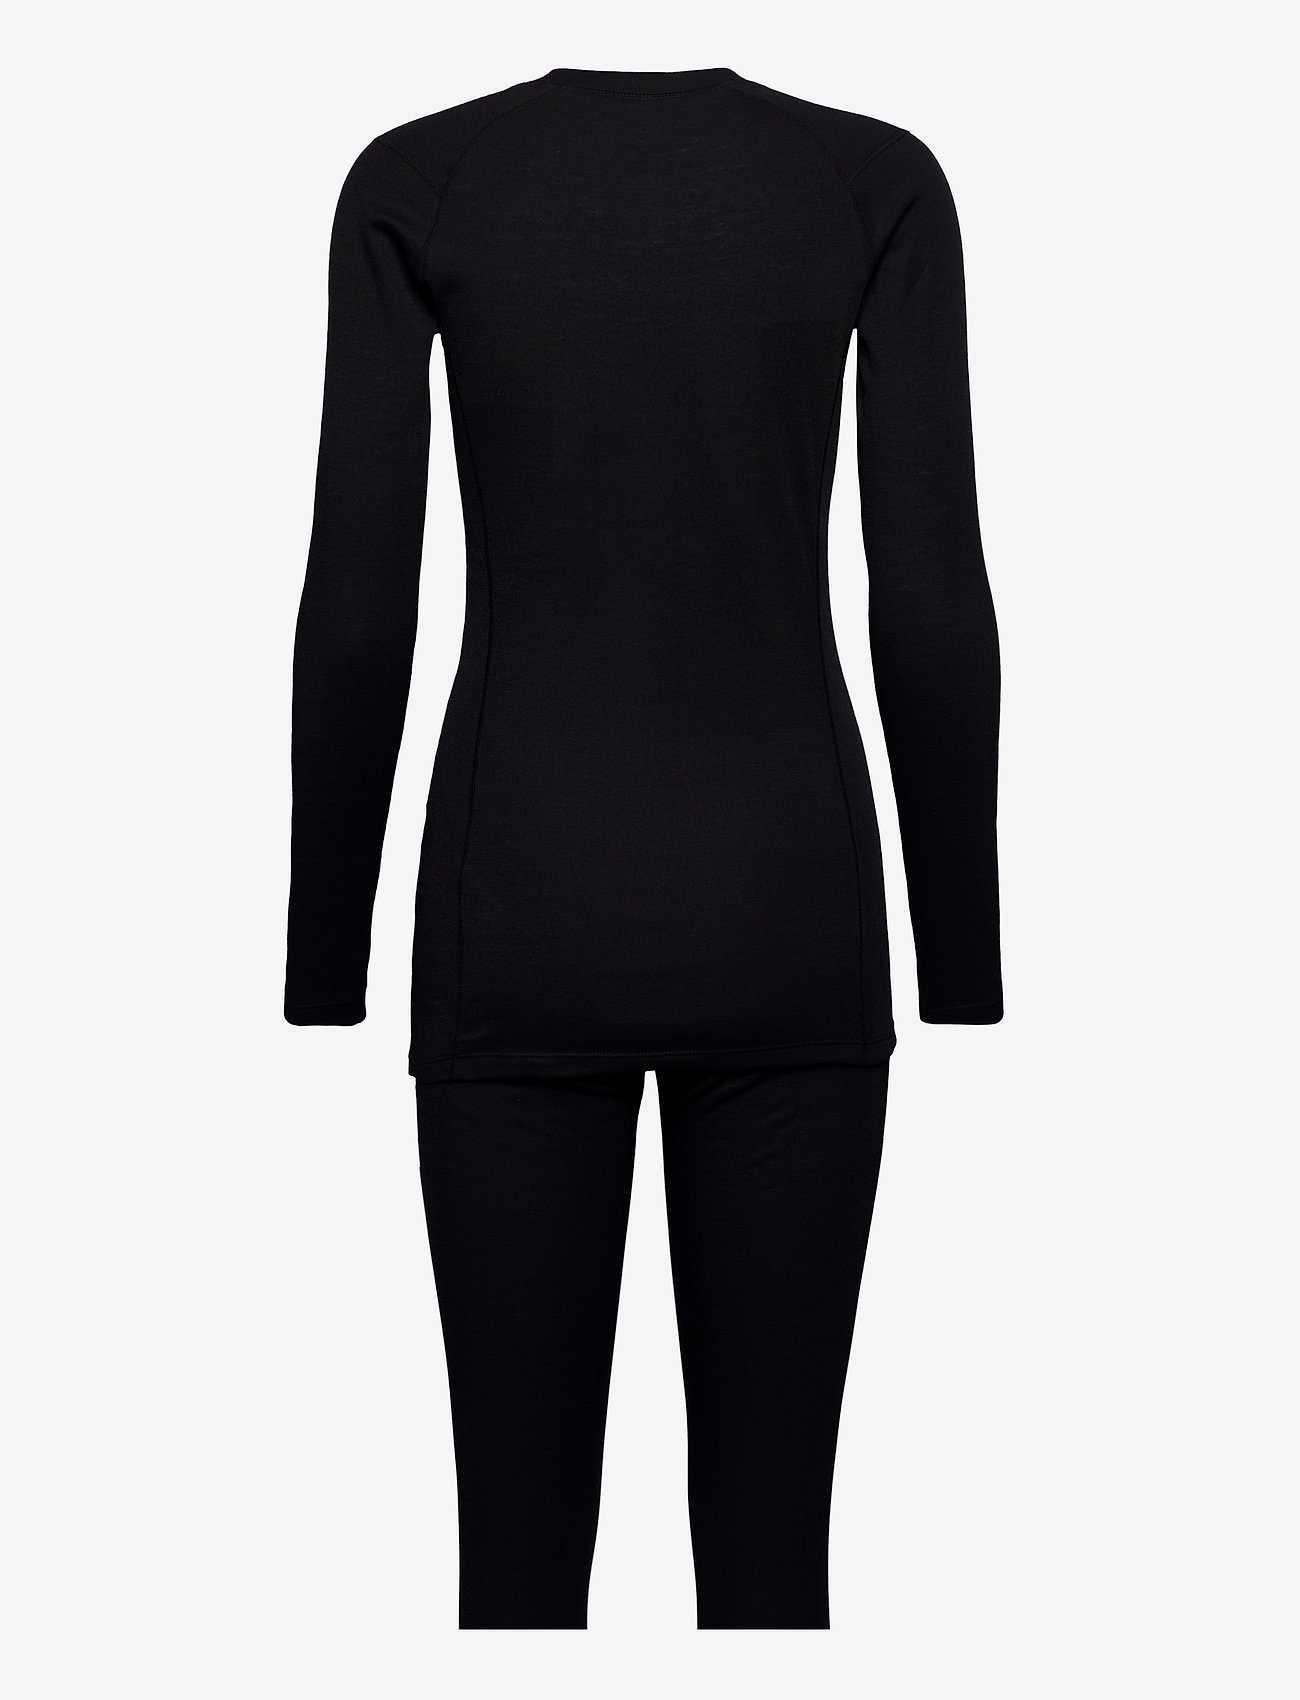 Craft - CORE WARM BASELAYER SET W - thermo ondergoedsets - black - 1